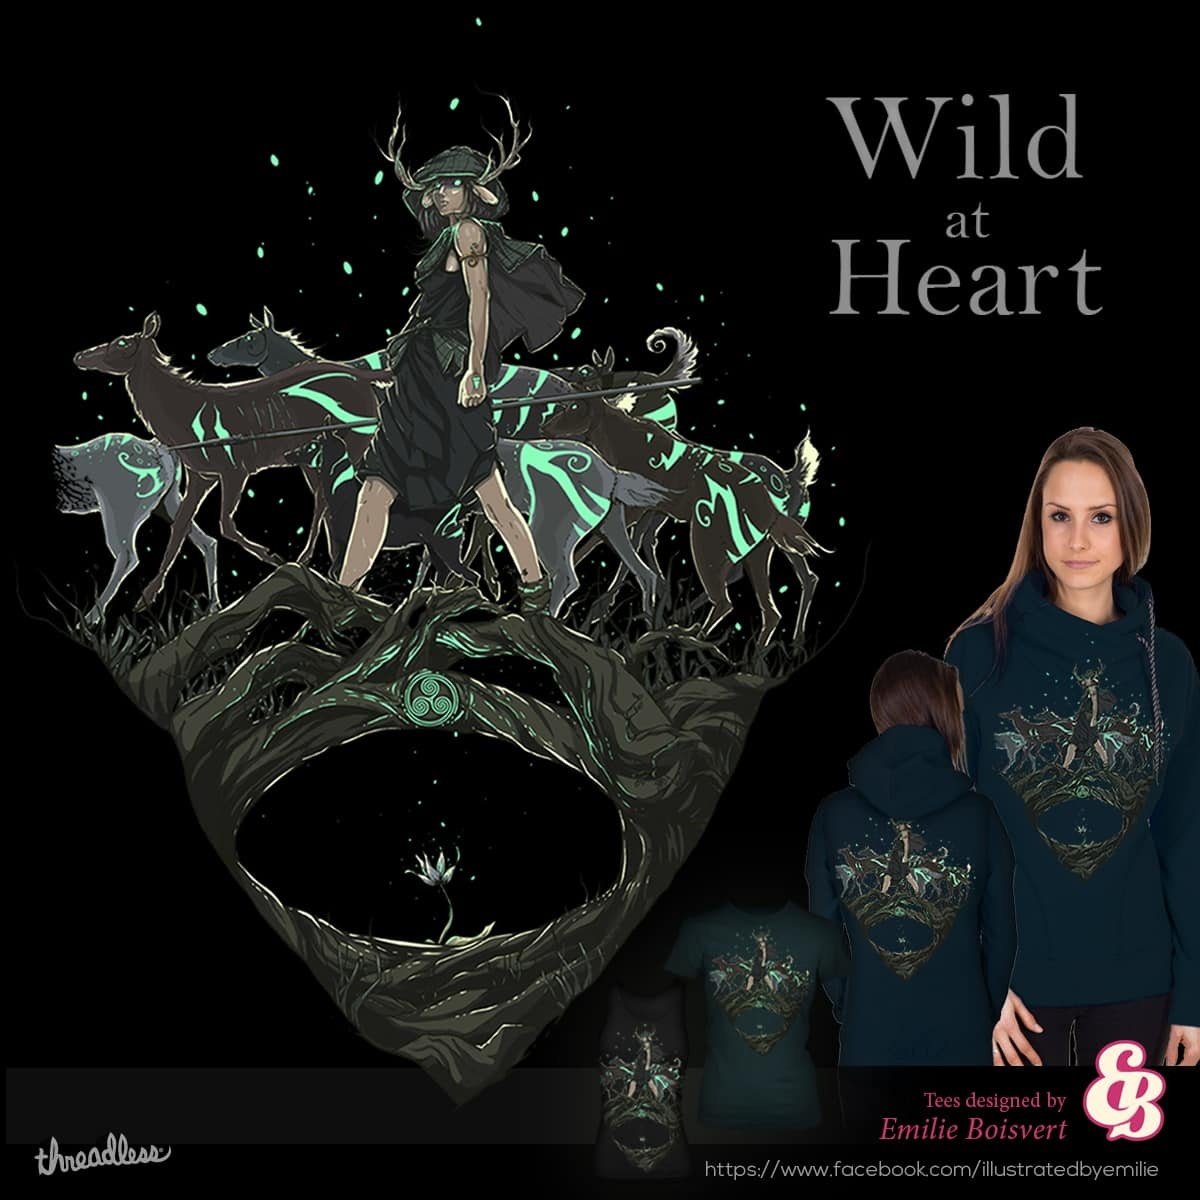 Wild at Heart by Emilie_Boisvert on Threadless